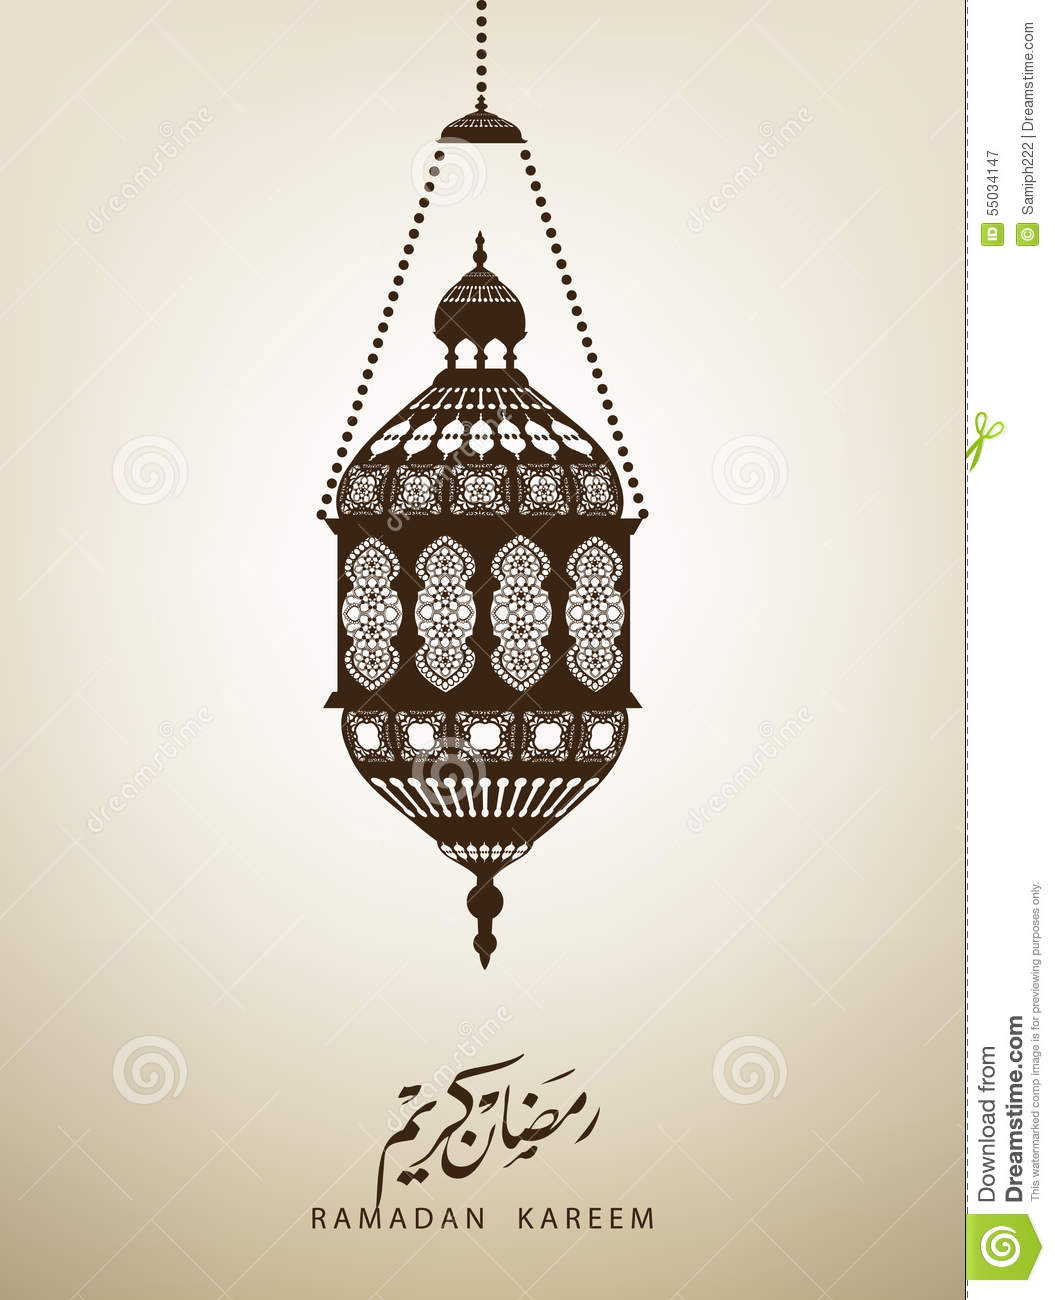 Lantern of ramadan ramadan kareem beautiful greeting card stock download lantern of ramadan ramadan kareem beautiful greeting card stock vector illustration of arabic m4hsunfo